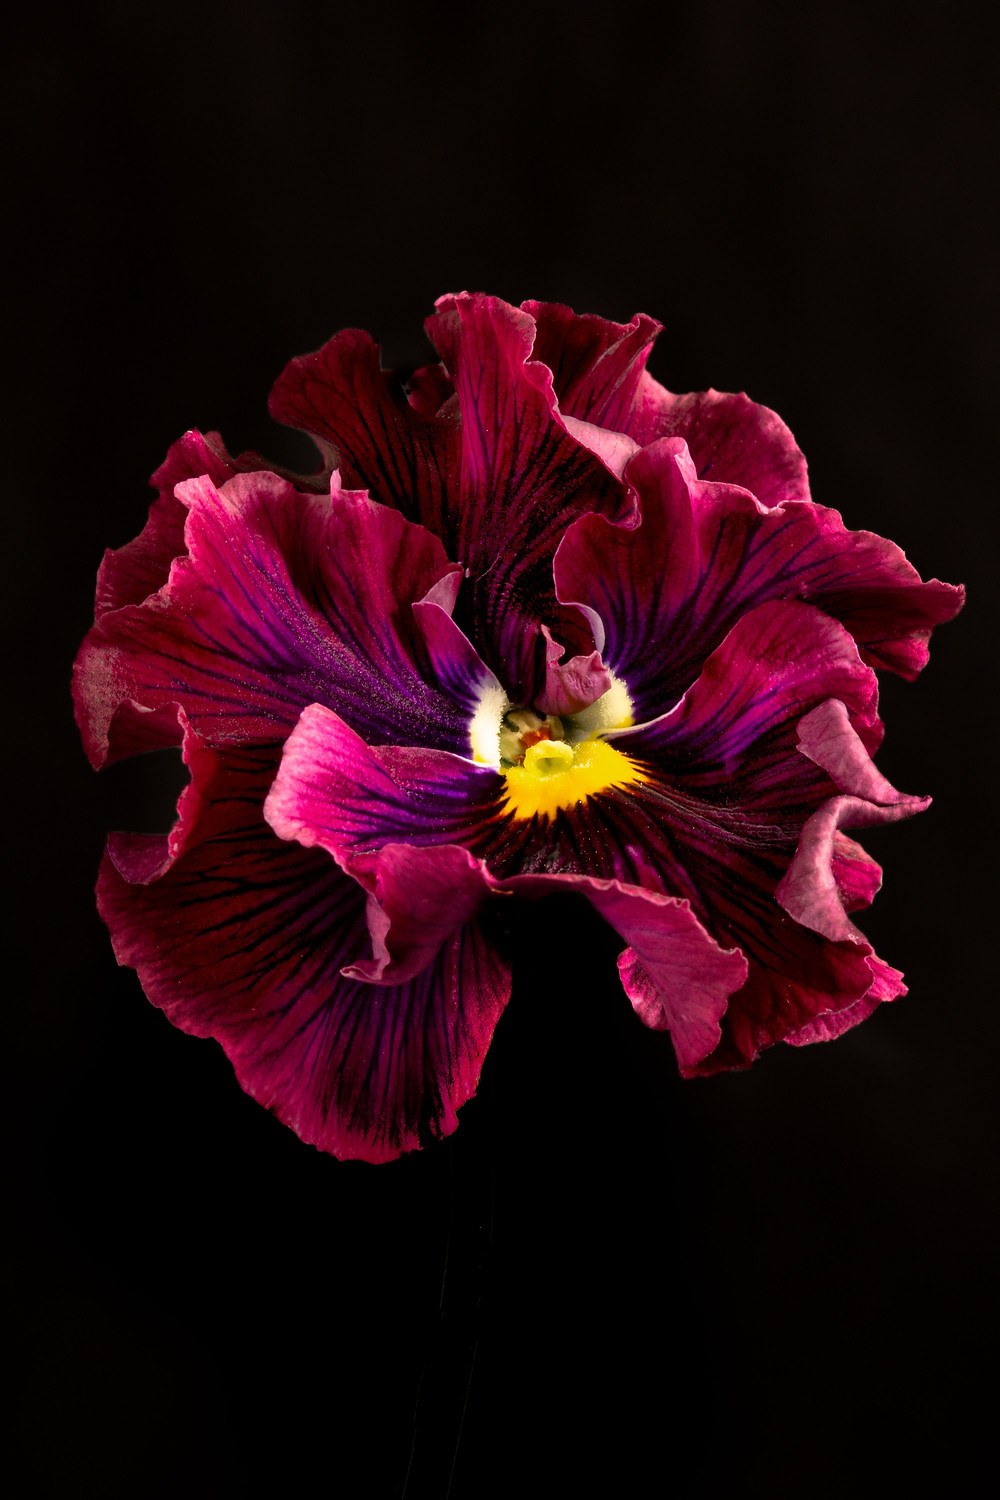 ruffled pansies